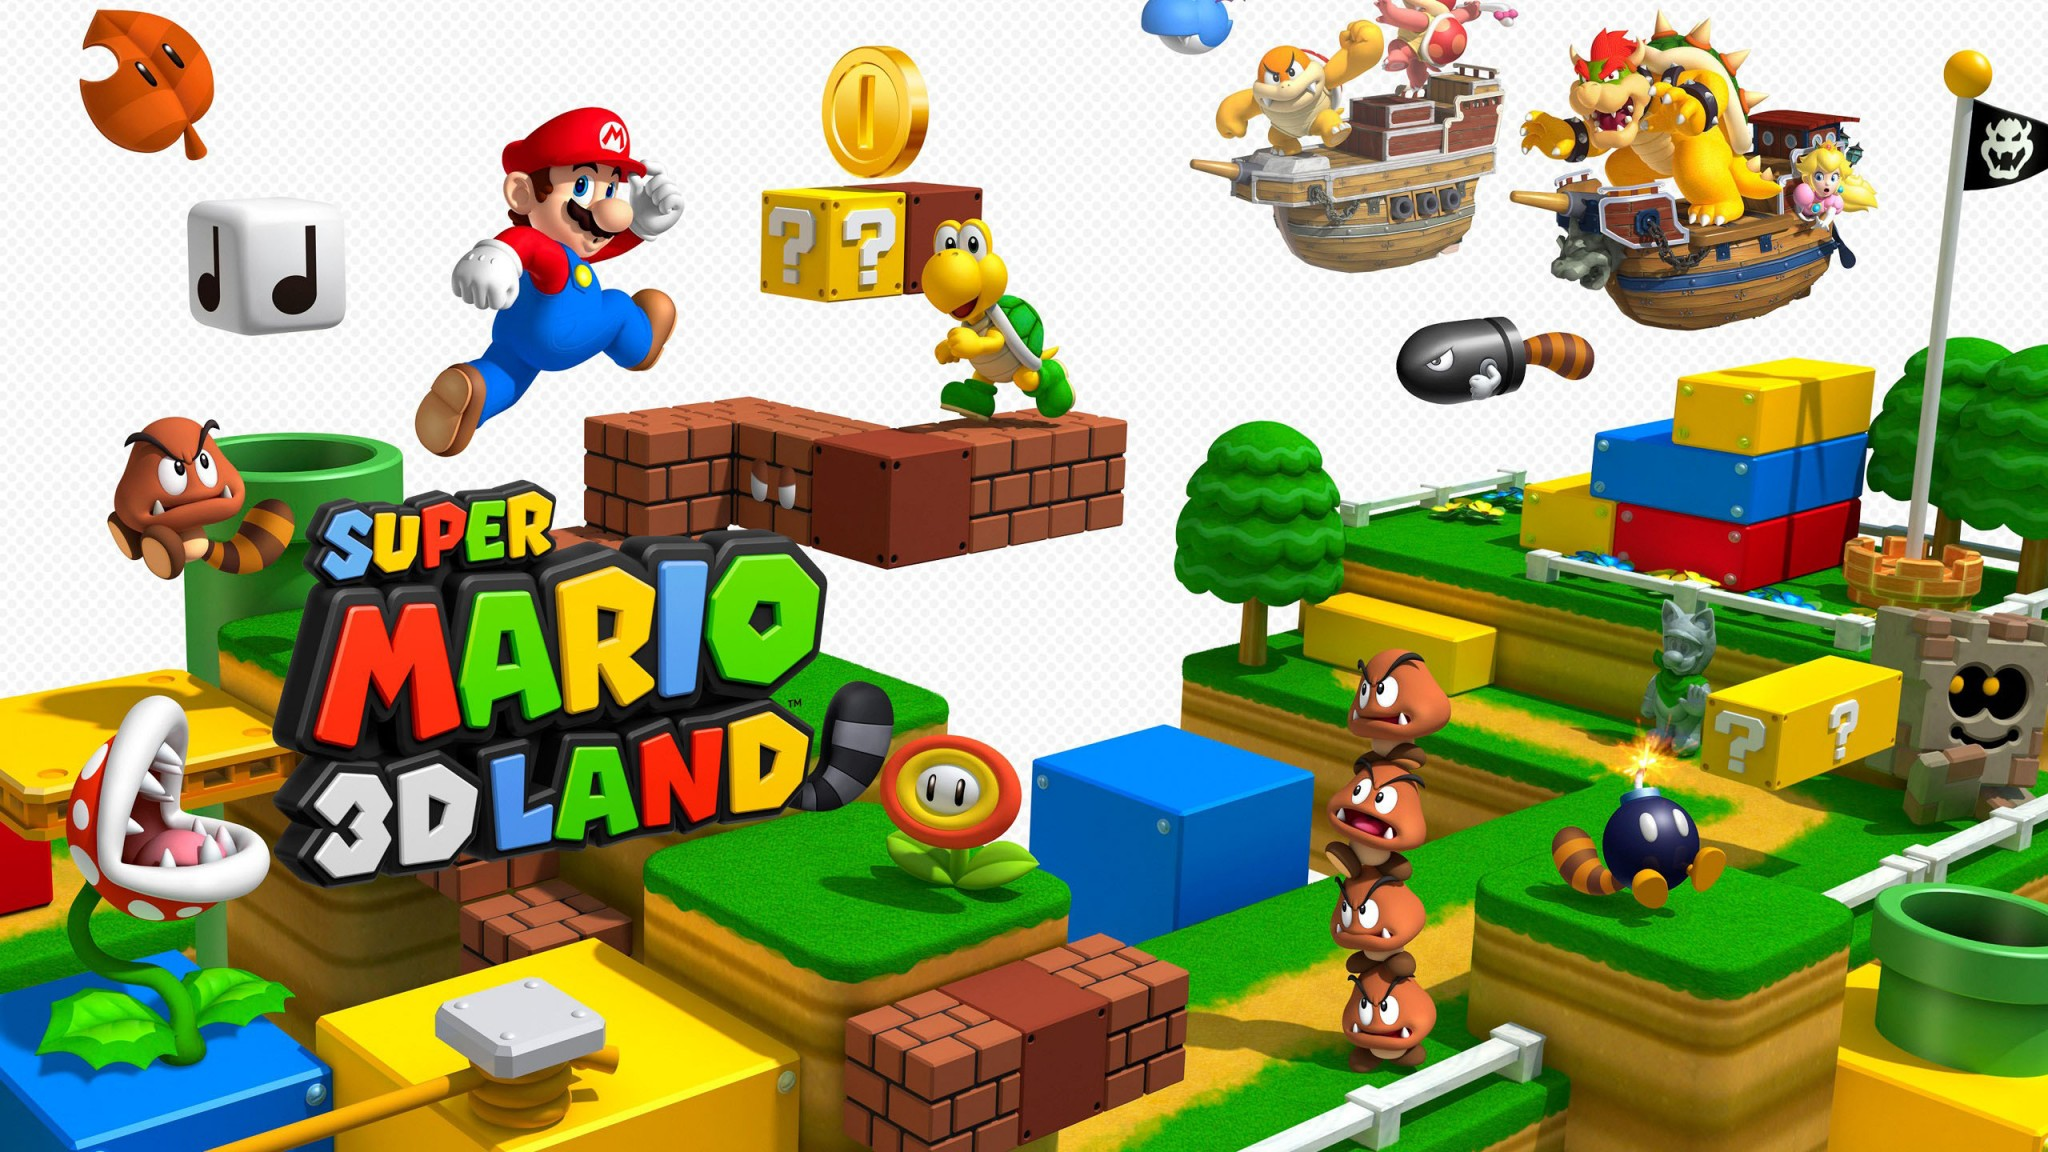 Super Mario  3D  Land   Free HD  HD Wallpaper